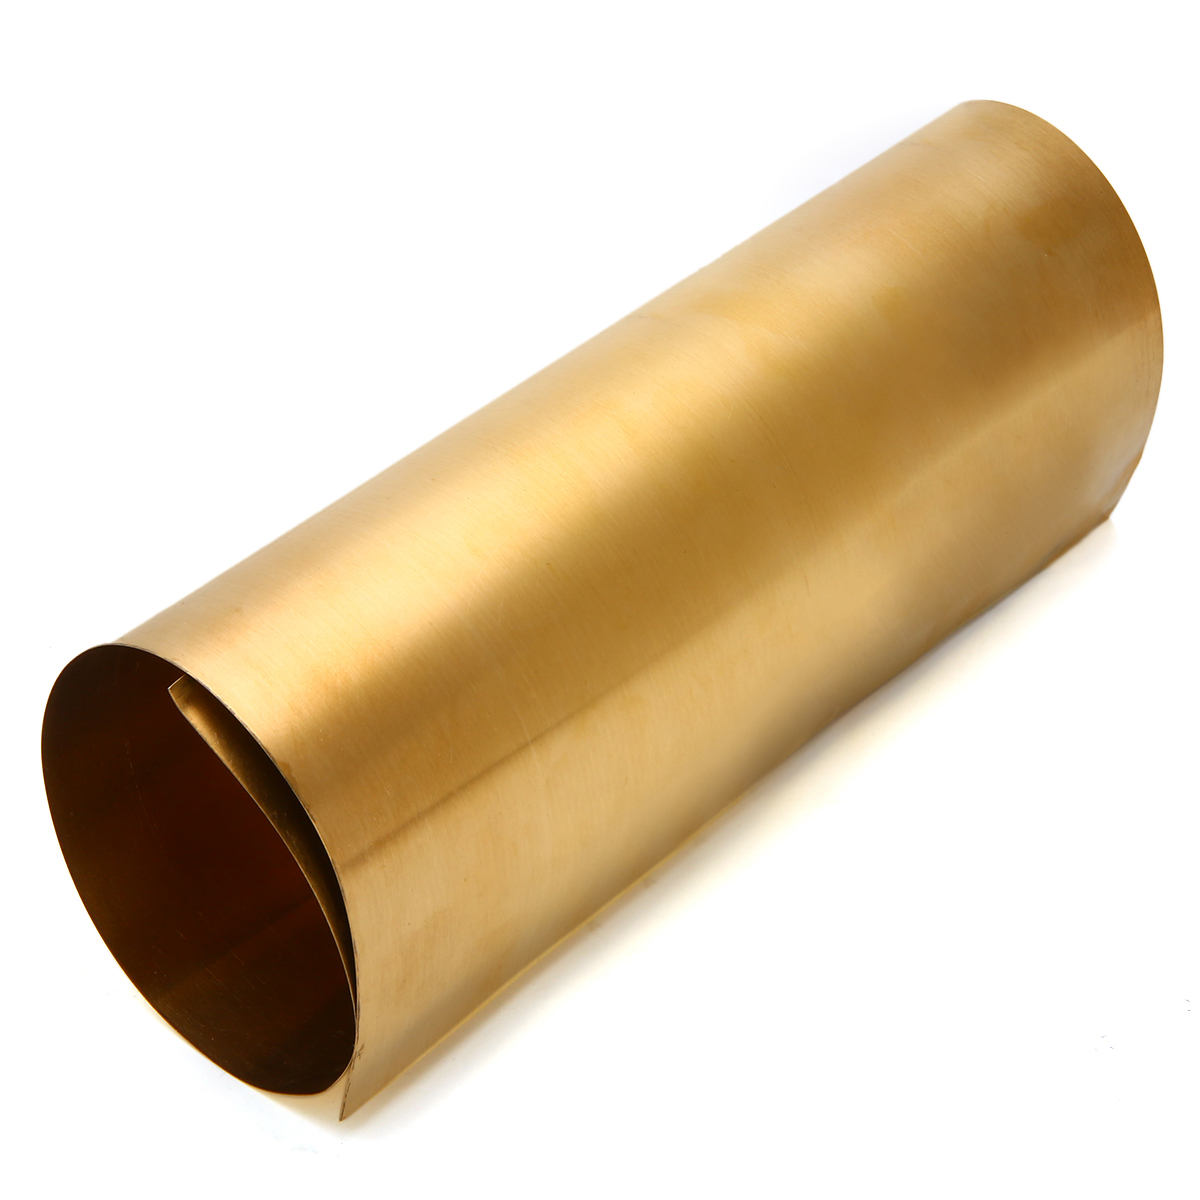 1pc 0.2mm Thickness Brass Metal Thin Sheet Foil Plate Shim 200mmx300mm For Metalworking